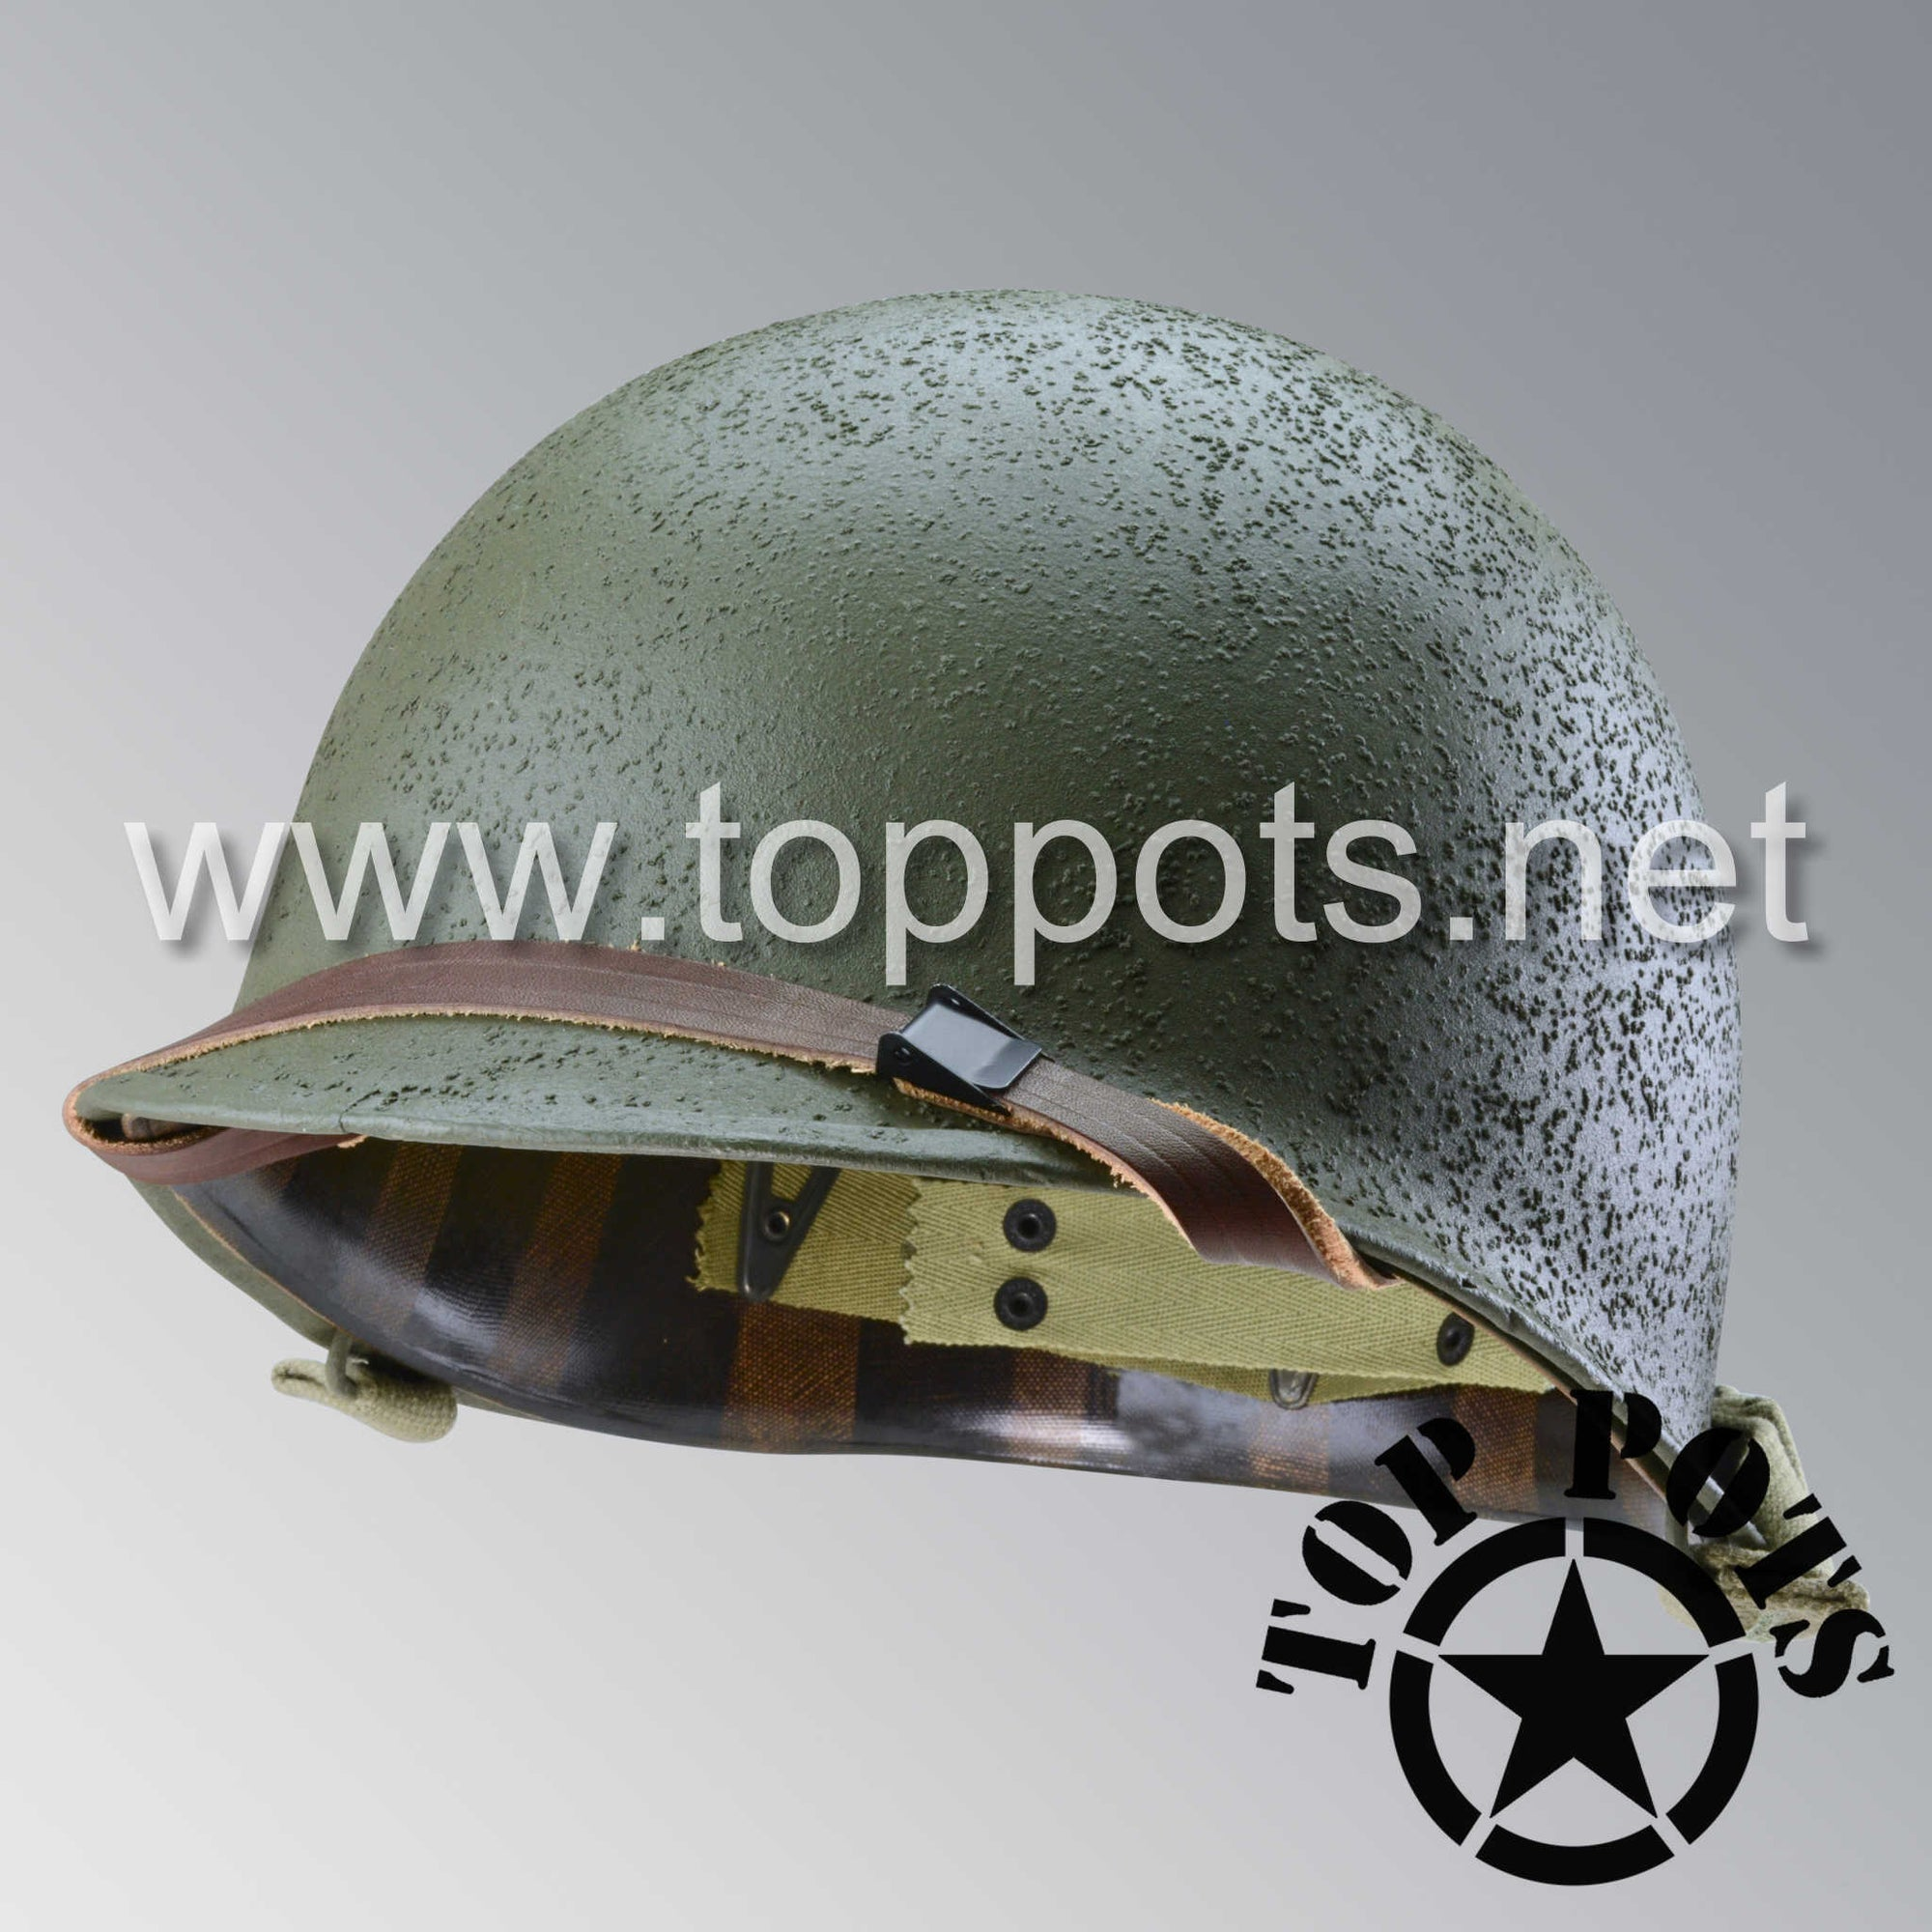 Image 1 of WWII USMC Restored Original M1 Infantry Helmet Swivel Bale Shell and Liner with Marine Corps Raider Emblem